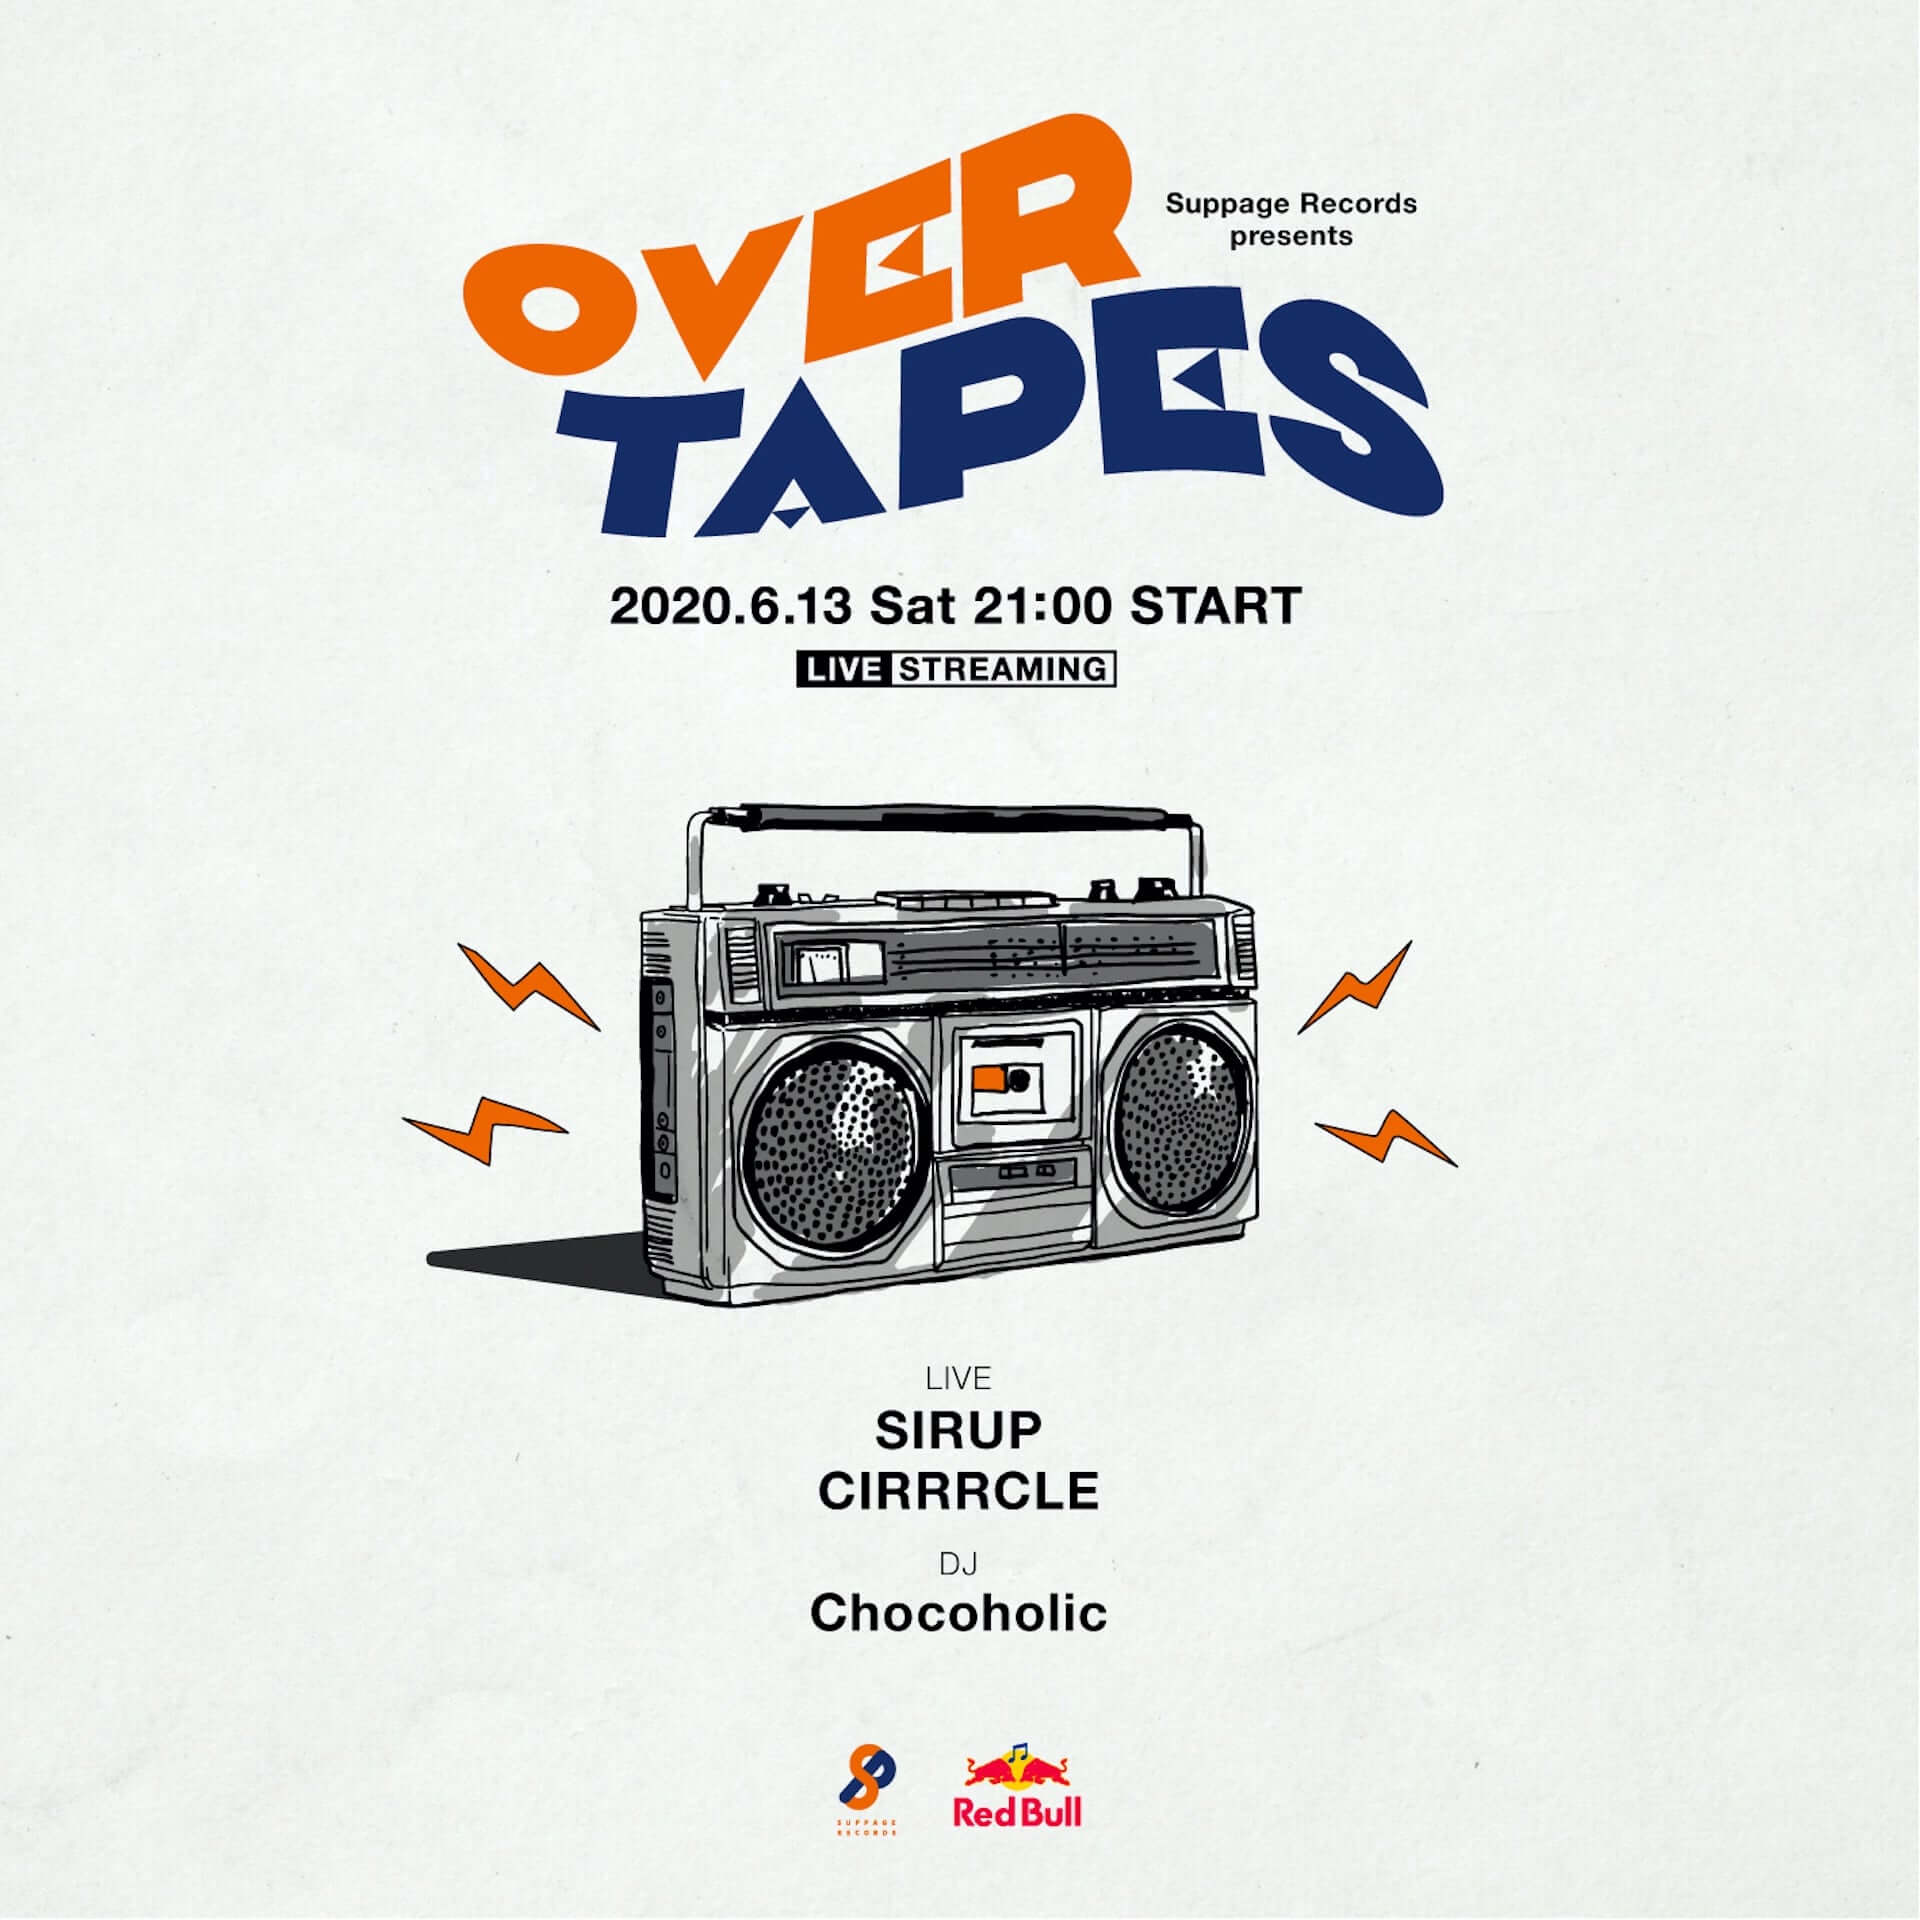 〈Suppage Records〉主催の生配信ライブ<OVERTAPES>が開催決定|SIRUP、CIRRRCLE、Chocoholicが出演 music200608_suppage_records_3-1920x1920